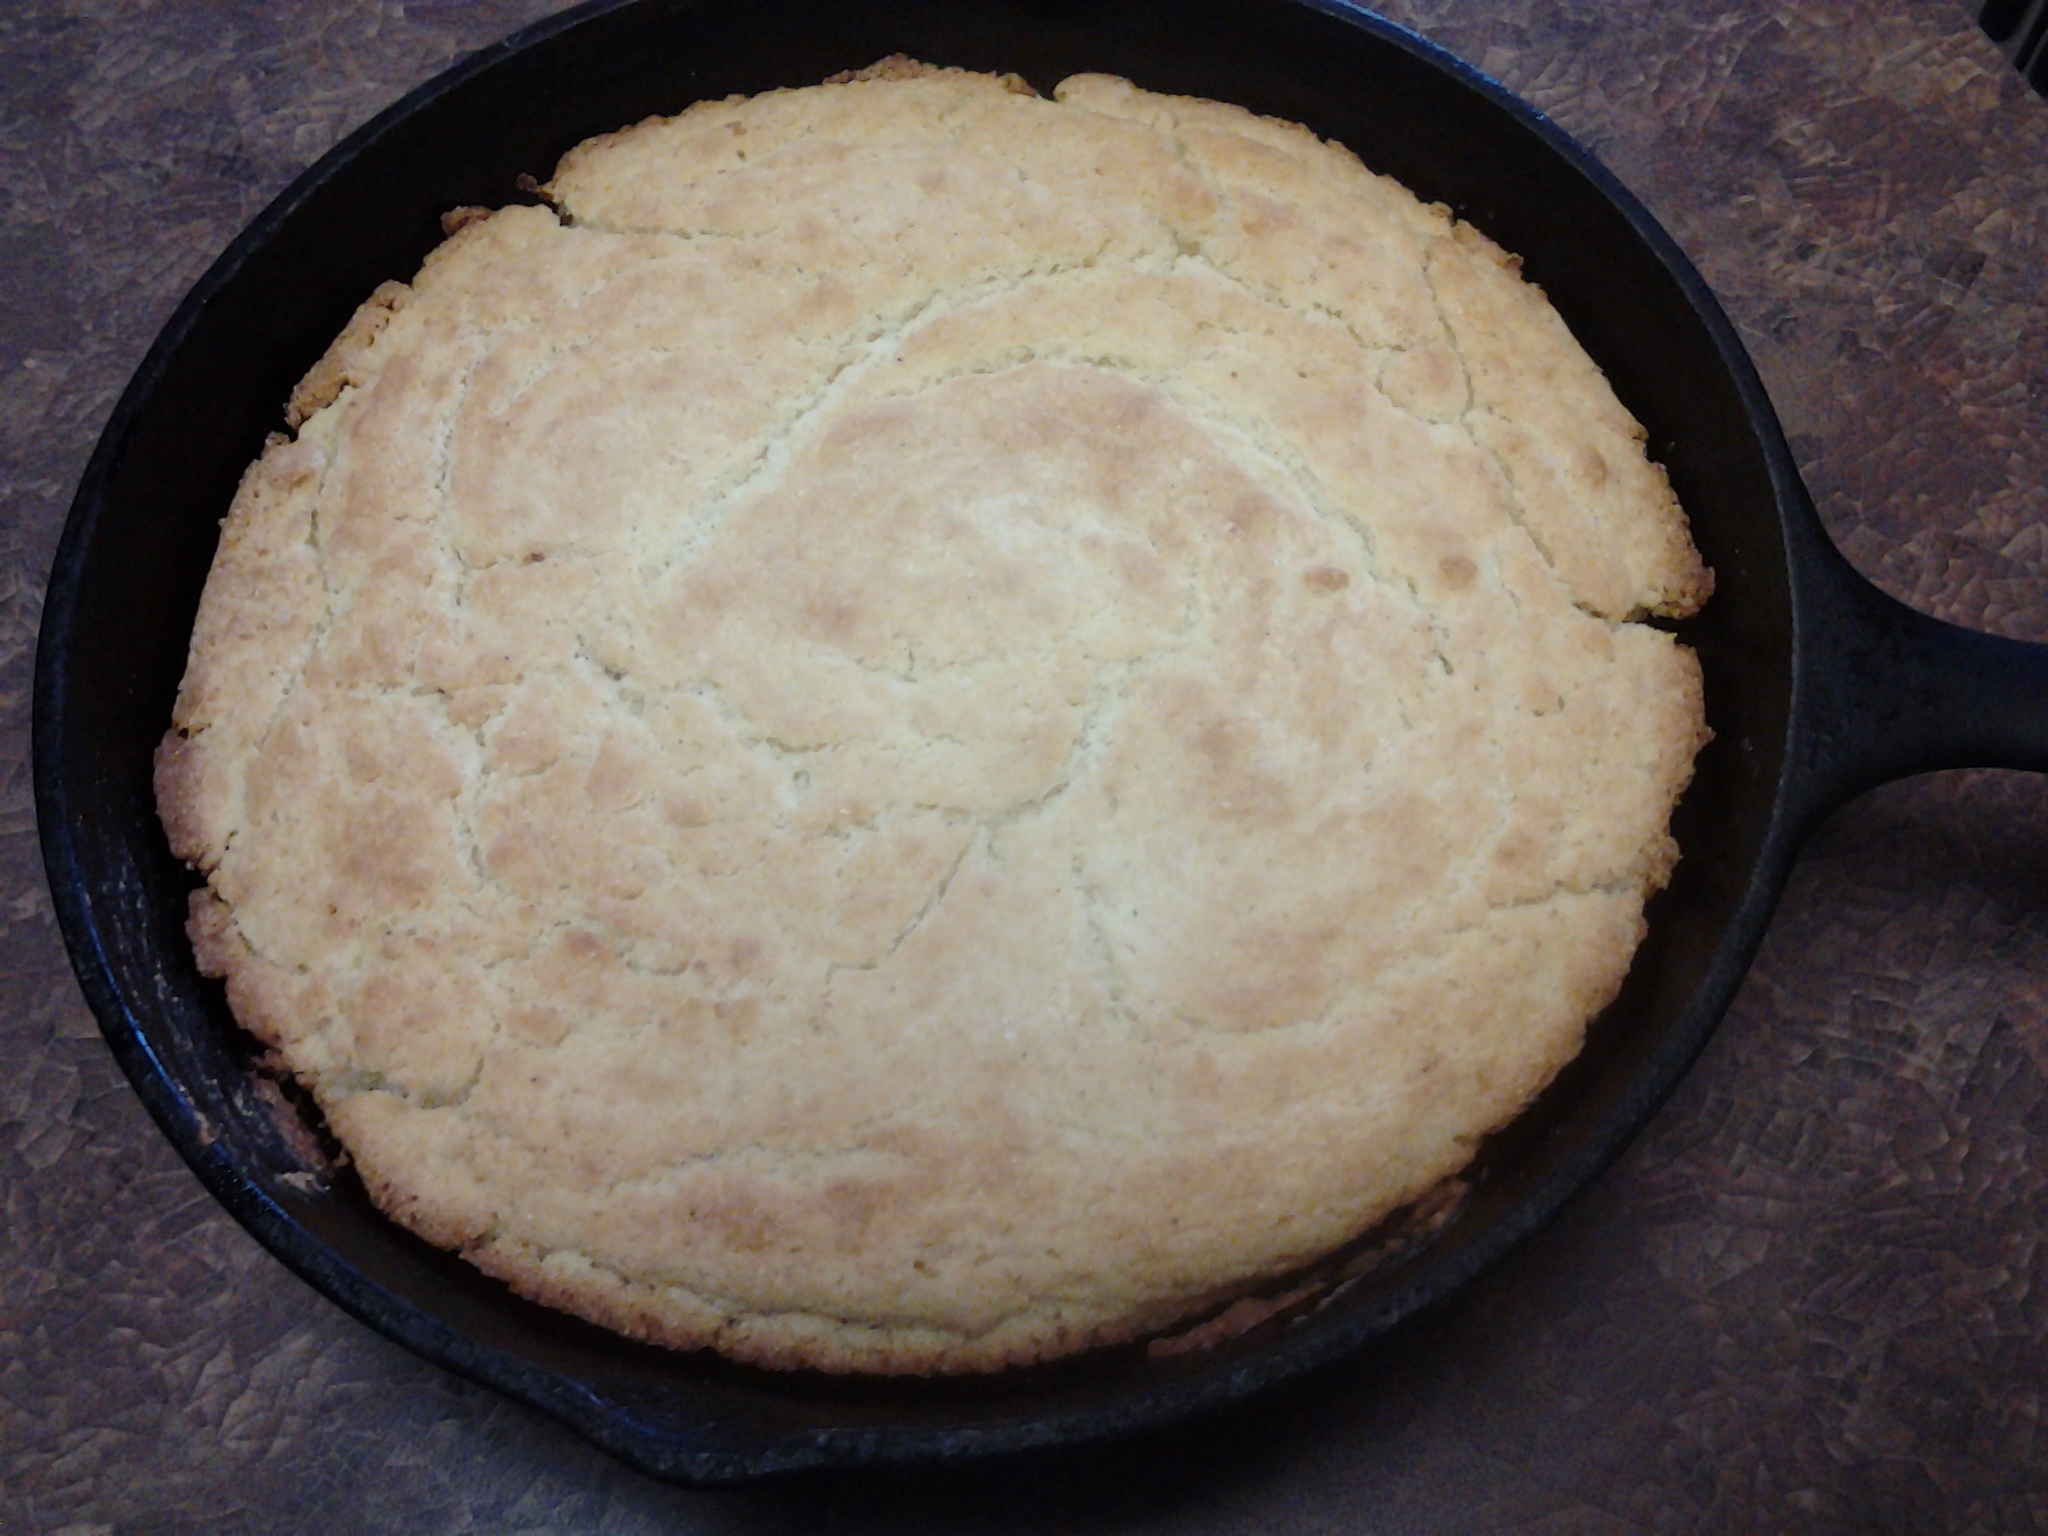 Cornbread - out of the oven